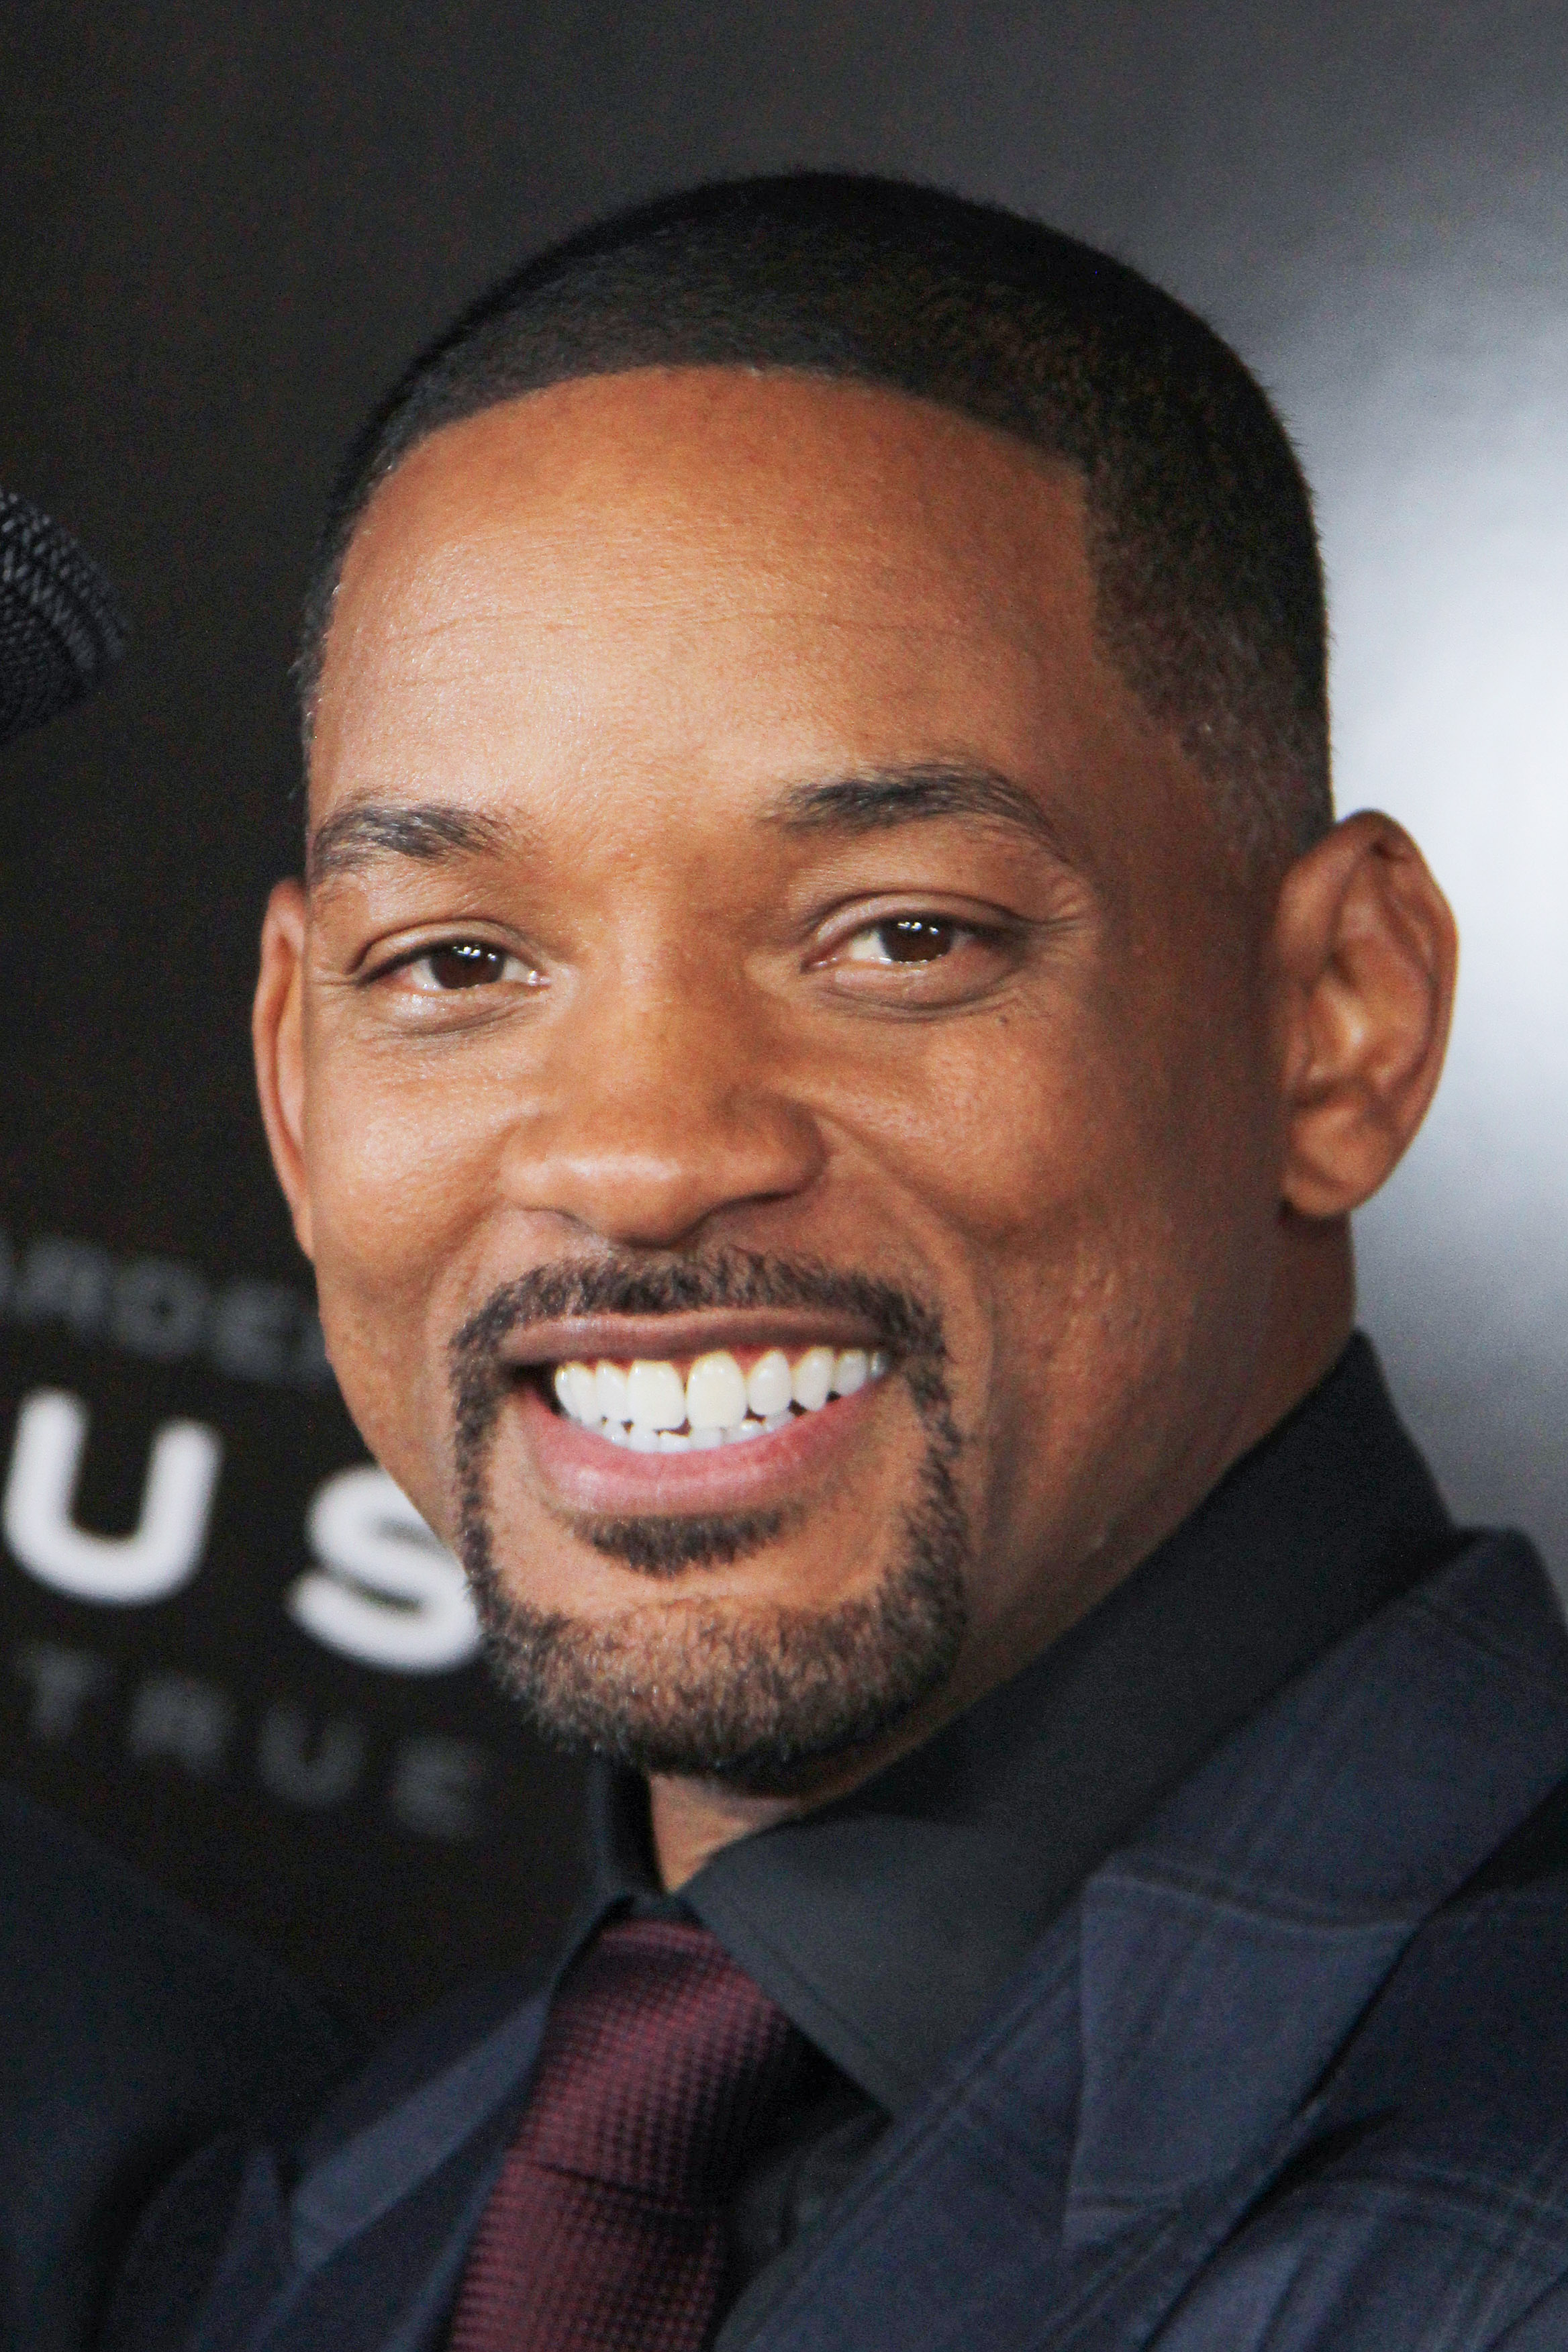 WATCH: Will Smith Jumps Into His 50th Birthday